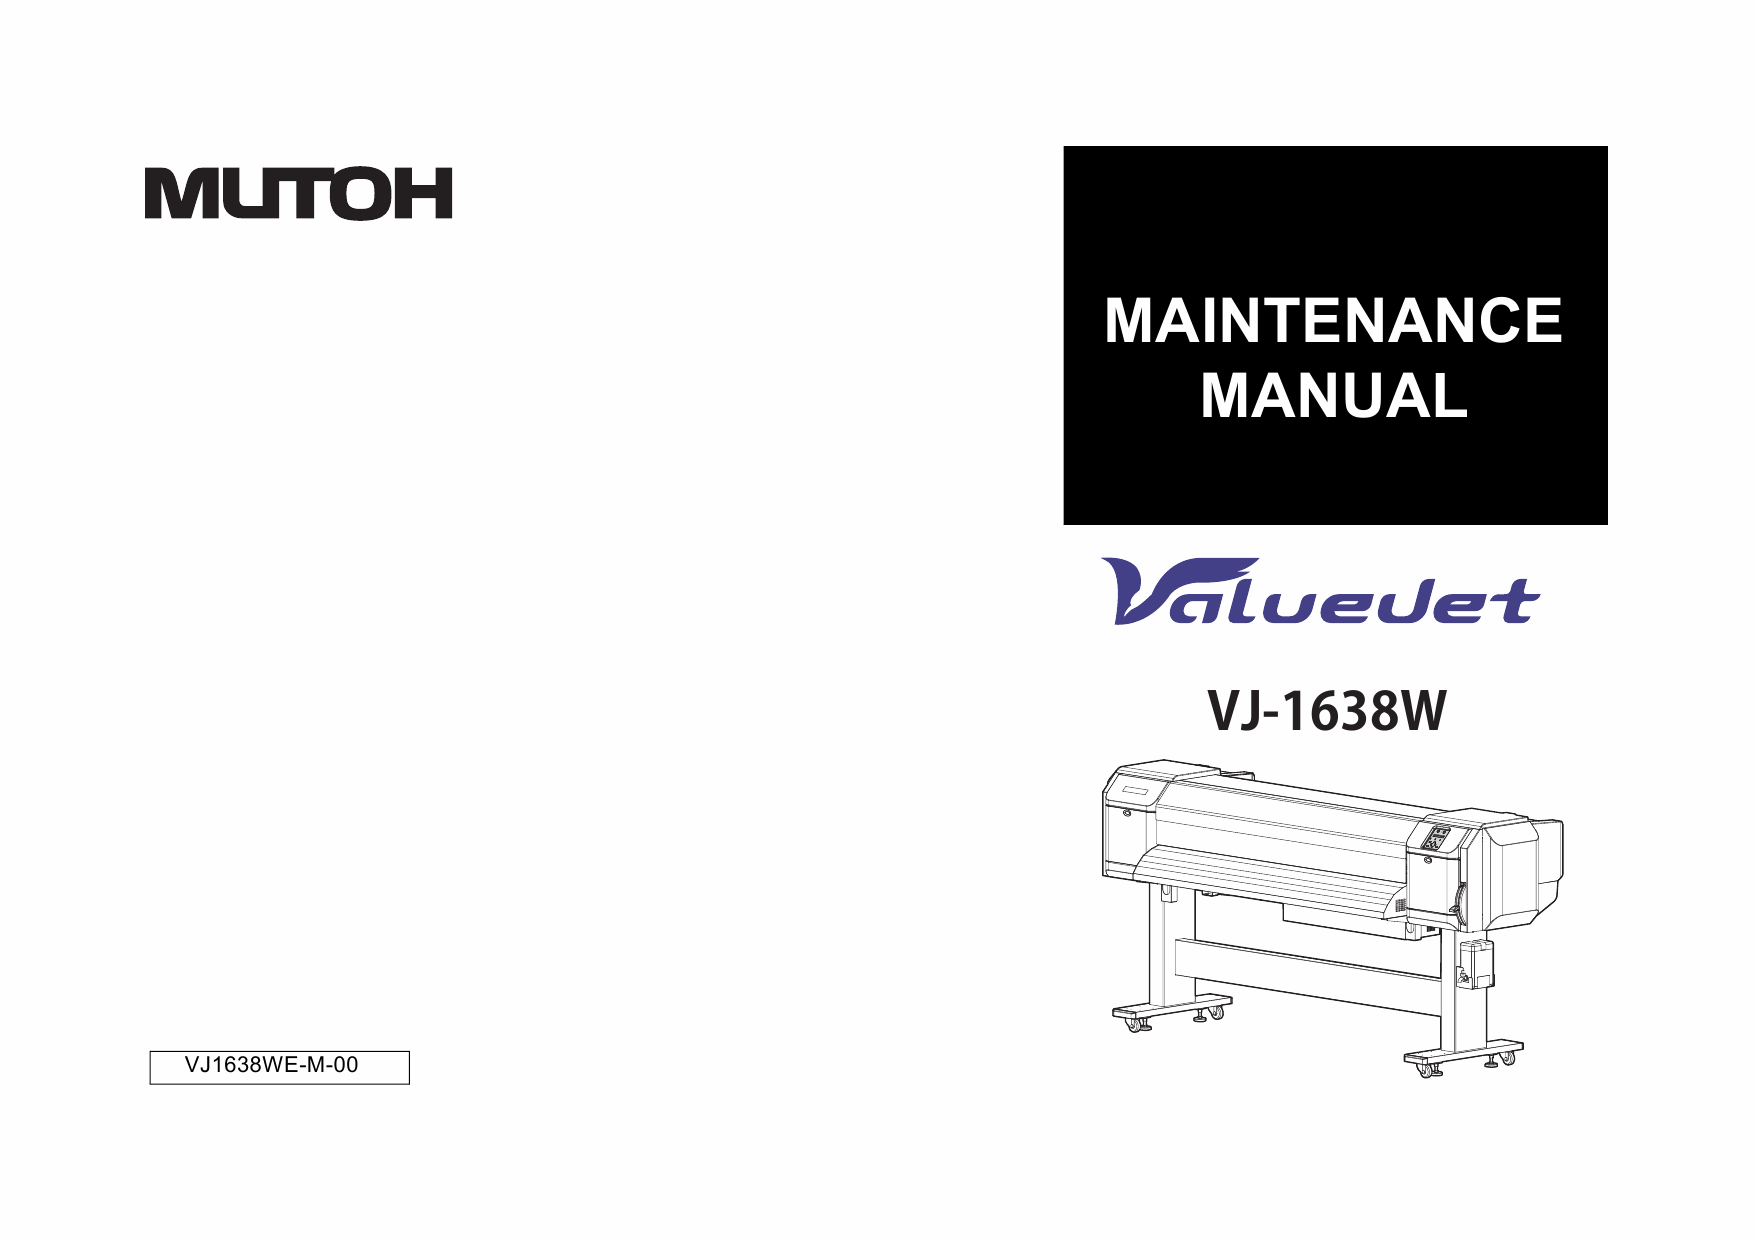 MUTOH ValueJet VJ 1638W MAINTENANCE Service and Parts Manual-1